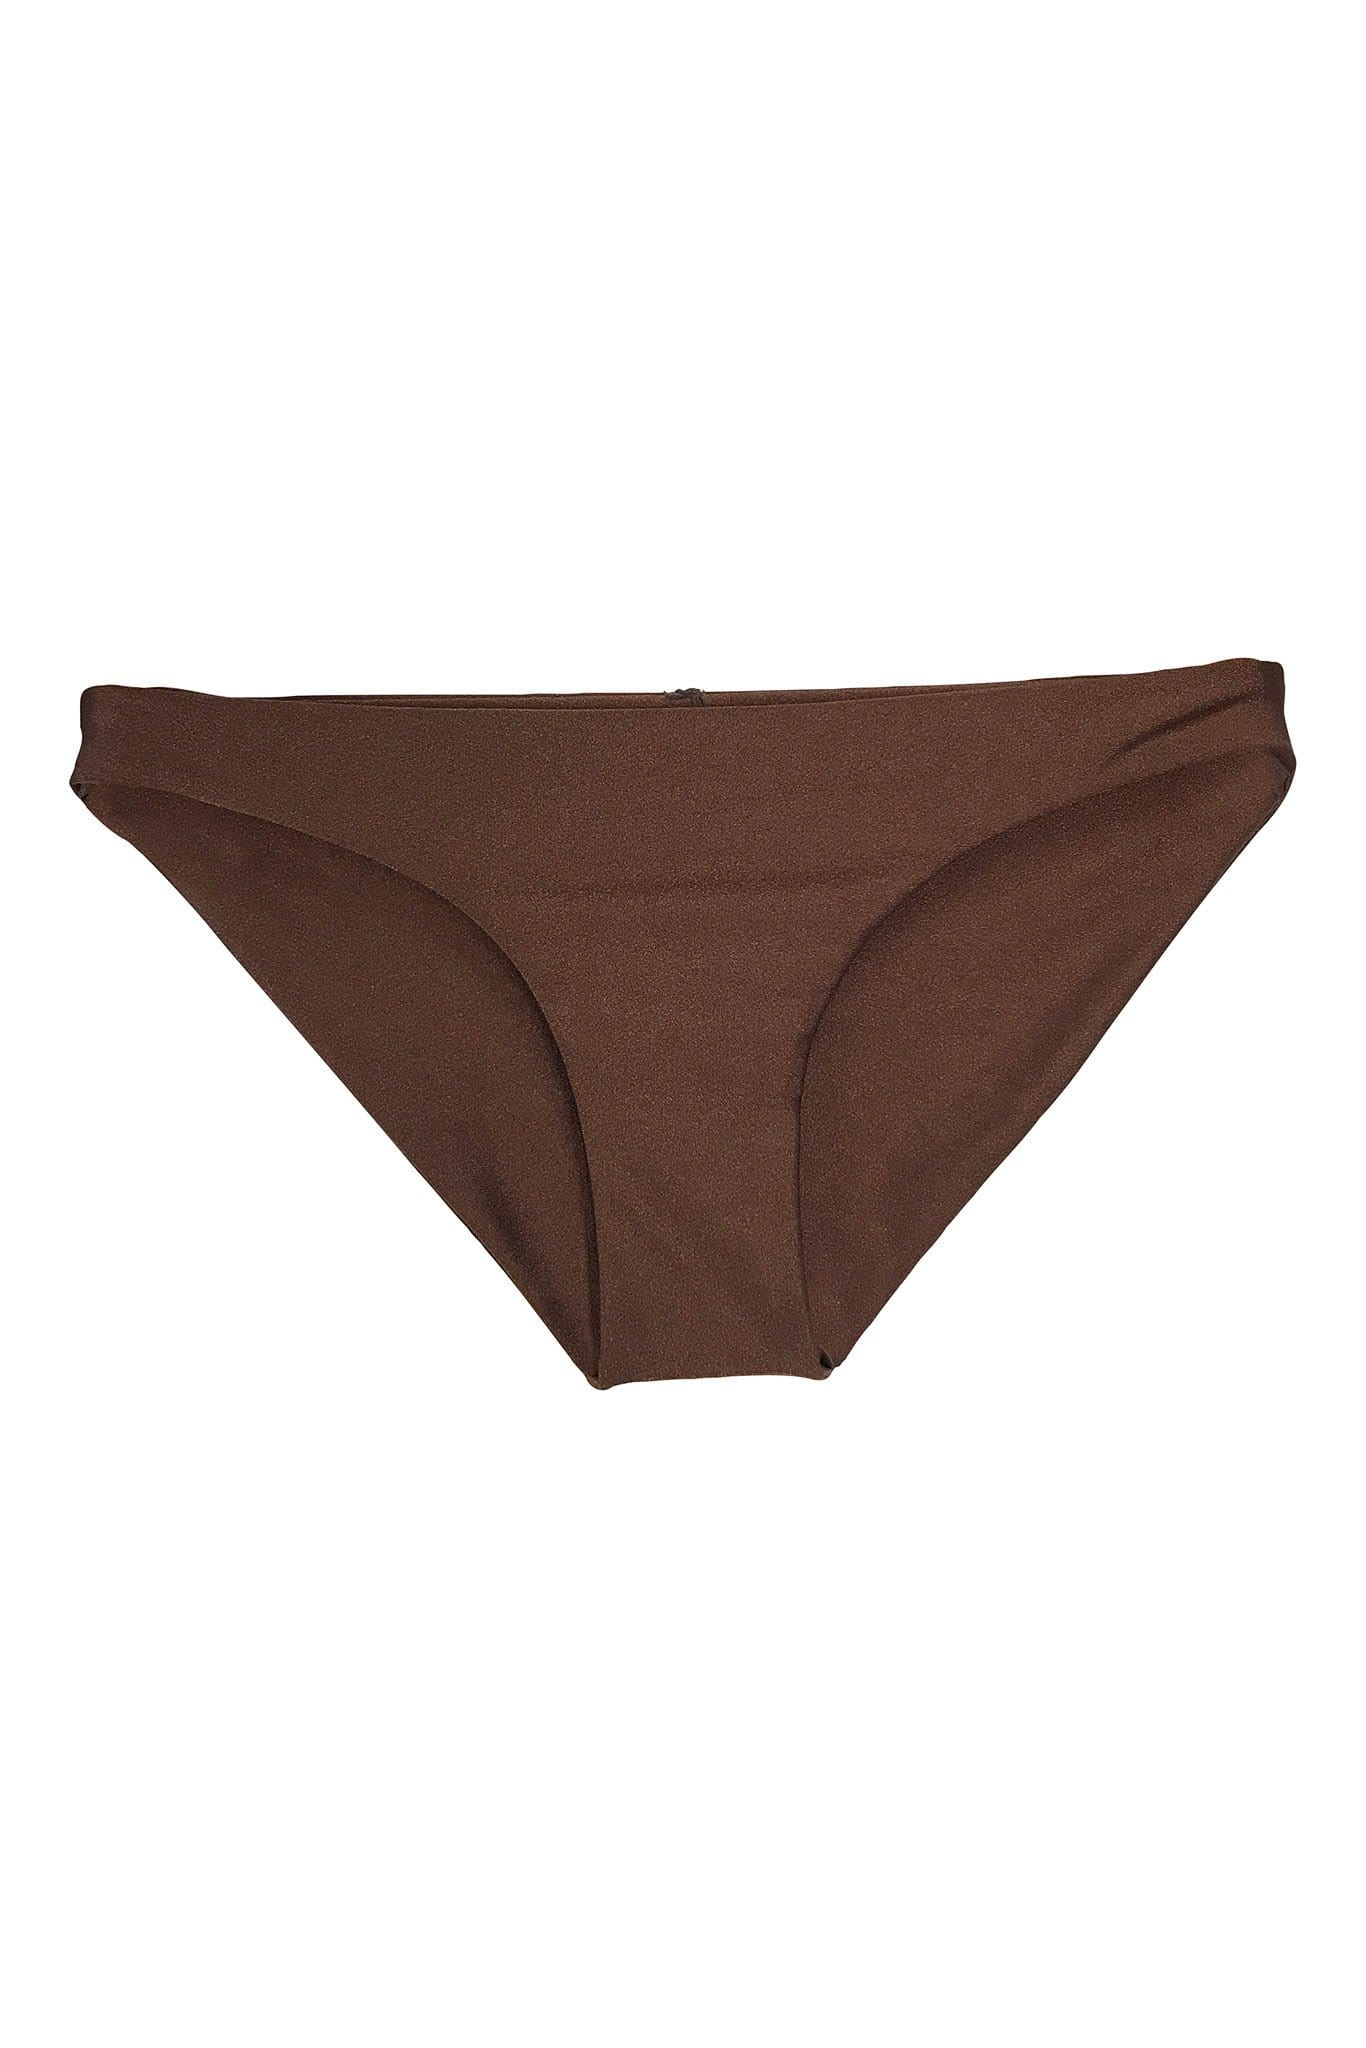 *SALE* Maya Bottom Chocolate